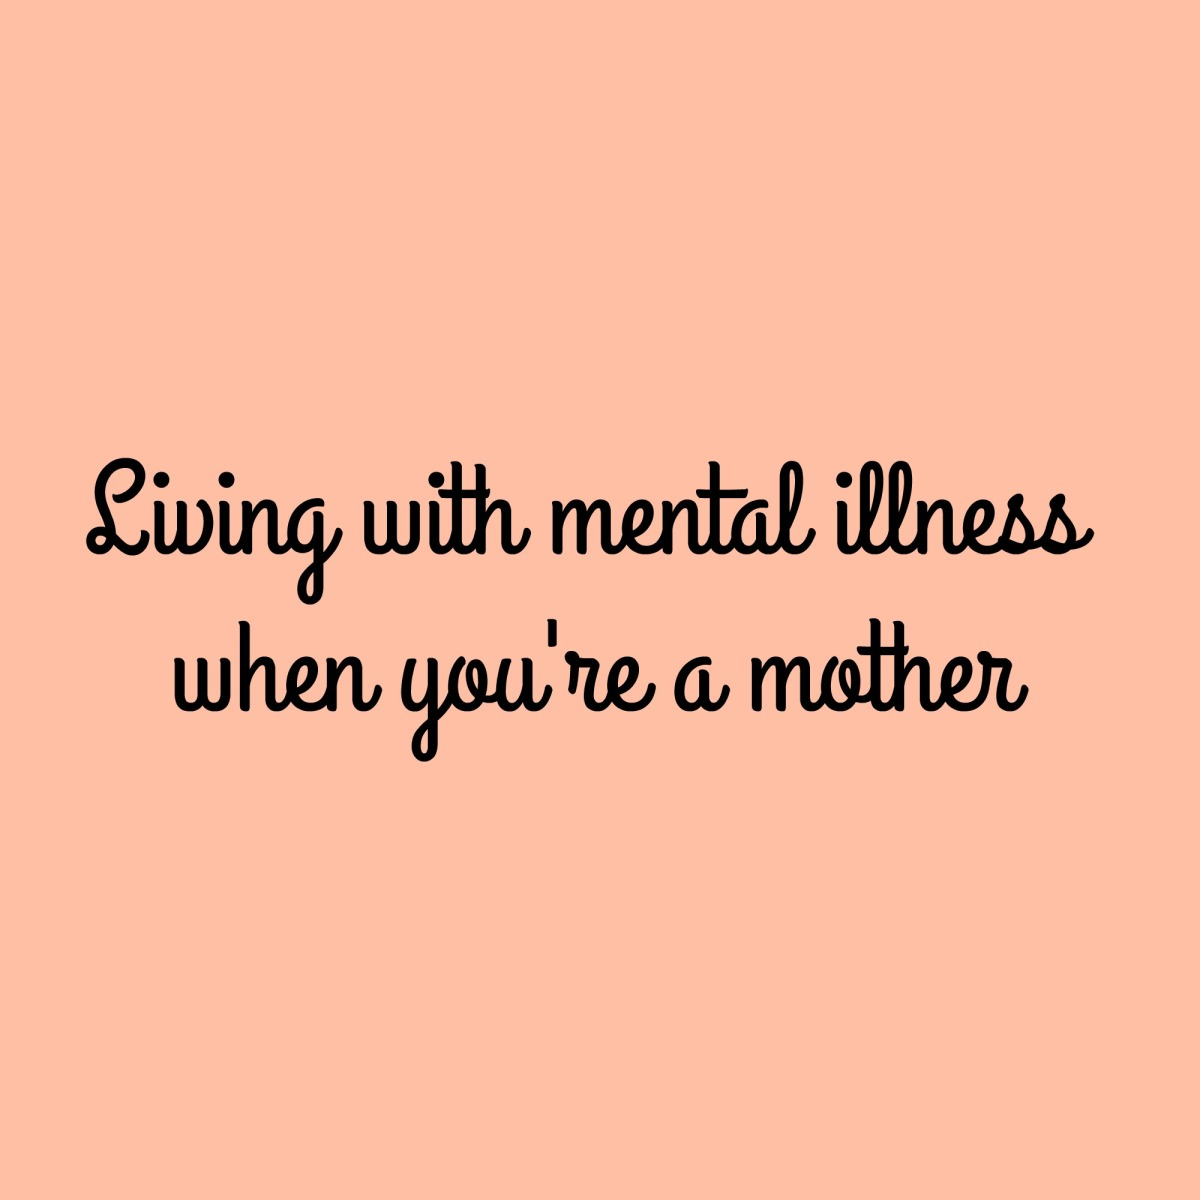 Living with mental illness when you're a mother